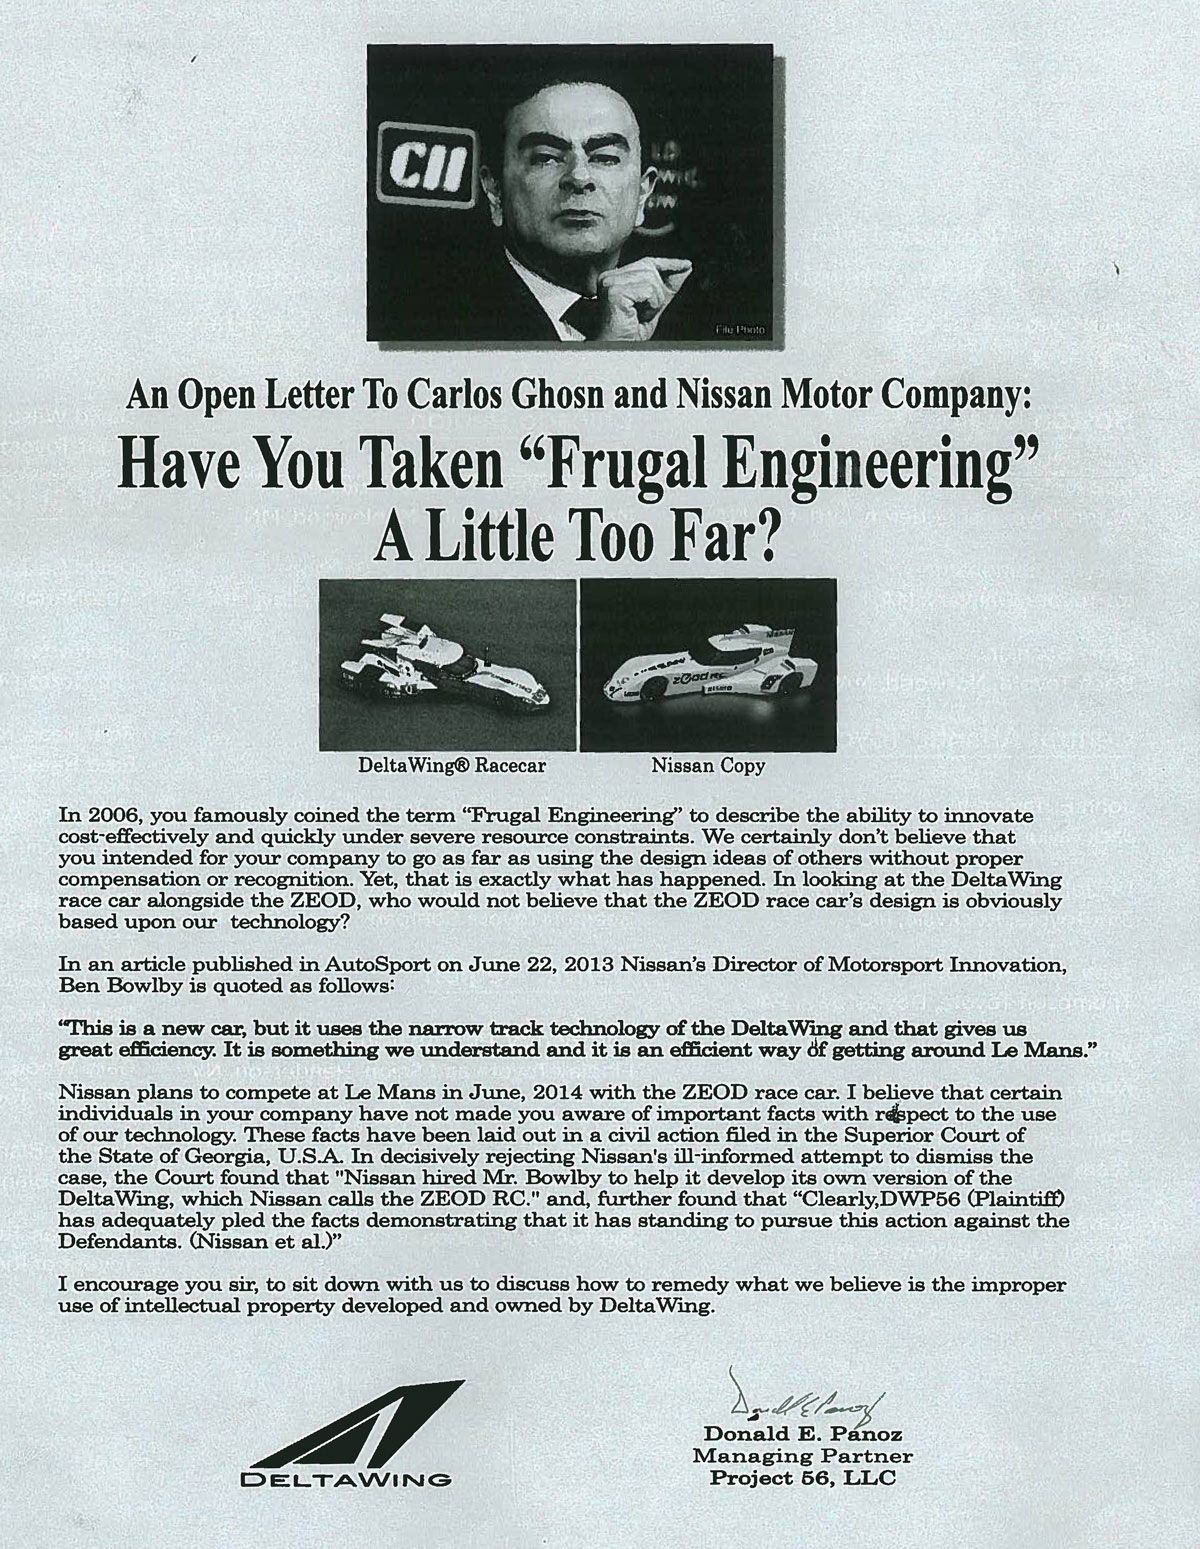 An Open Letter To Carlos Ghosn and Nissan Motor Company: Have You Taken 'Frugal Engineering' A Little Too Far?  In 2006, you famously coined the term 'Frugal Engineering' to describe the ability to innovate cost-effectively and quickly under severe resource constraints. We certainly don't believe that you intended for your company to go as far as using the design ideas of others without proper compensation or recognition. Yet, that is exactly what has happened. In looking at the DeltaWing race car alongside the ZEOD, who would not believe that the ZEOD race car's design is obviously based upon our technology?  In an article published in AutoSport on June 22, 2013 Nissan's Director of Motorsport Innovation, Ben Bowlby is quoted as follows:  'This is a new car, but it uses the narrow track technology of the DeltaWing and that gives us great efficiency. It is something we understand and it is an efficient way of getting around Le Mans.' Nissan plans to compete at Le Mans in June, 2014 with the ZEOD race car. I believe that certain individuals in your company have not made you aware of important facts with respect to the use of our technology. These facts have been laid out in a civil action filed in the Superior Court of the State of Georgia, U.S.A. In decisively rejecting Nissan's ill-informed attempt to dismiss the case, the Court found that 'Nissan hired Mr. Bowlby to help it develop its own version of the DeltaWing, which Nissan calls the ZEOD RC.' and, further found that 'Clearly,DWP56 (Plaintiff) has adequately pled the facts demonstrating that it has standing to pursue this action against the Defendants. (Nissan et al)'  I encourage you sir, to sit down with us to discuss how to remedy what we believe is the improper use of intellectual property developed and owned by DeltaWing.   Donald E. Panoz Managing Partner Project 56, LLC